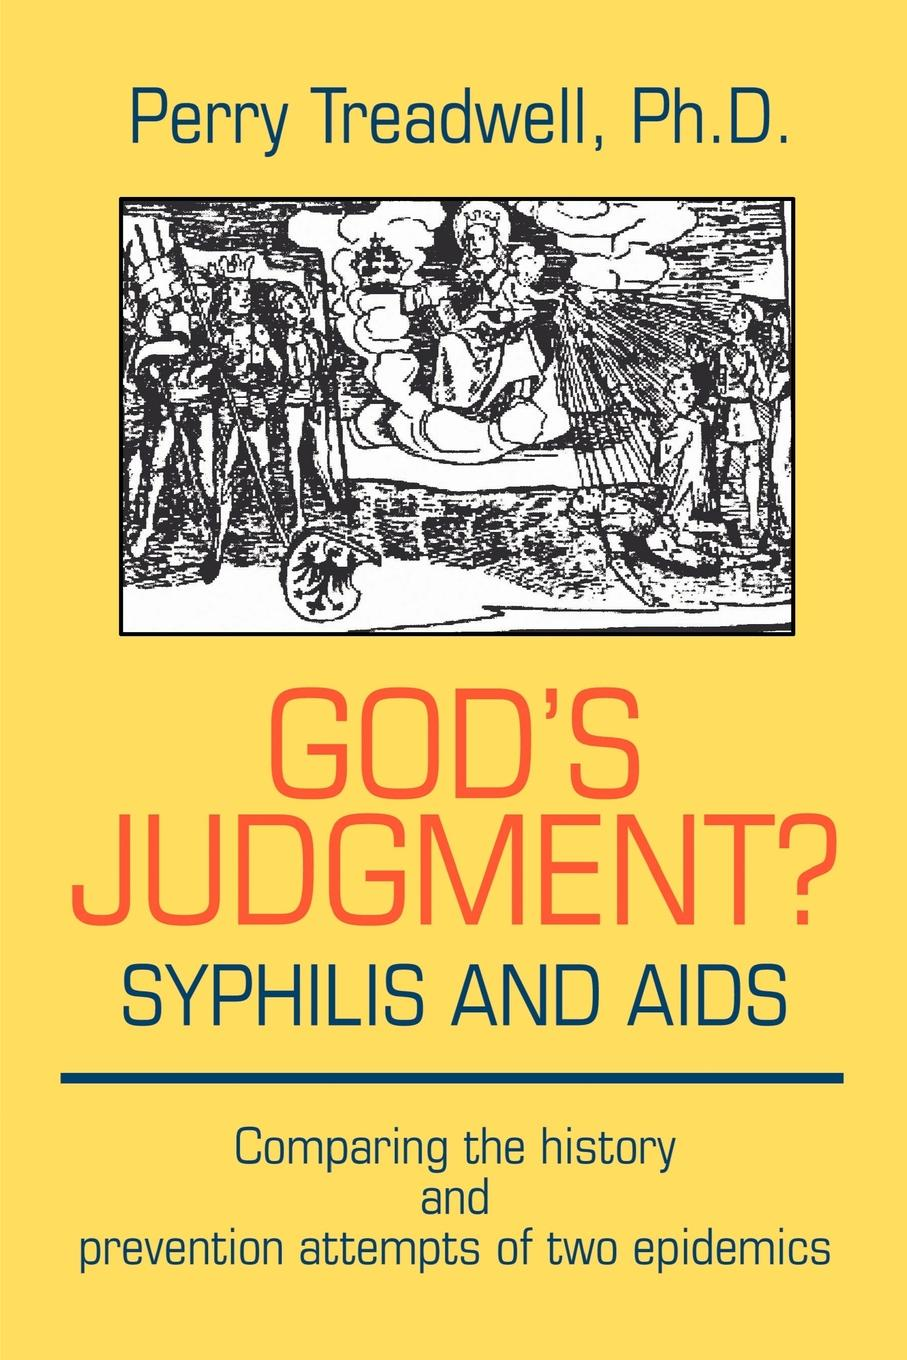 Perry Treadwell Gods Judgement? Syphilis and AIDS. Comparing the History Prevention Attempts of Two Epidemics